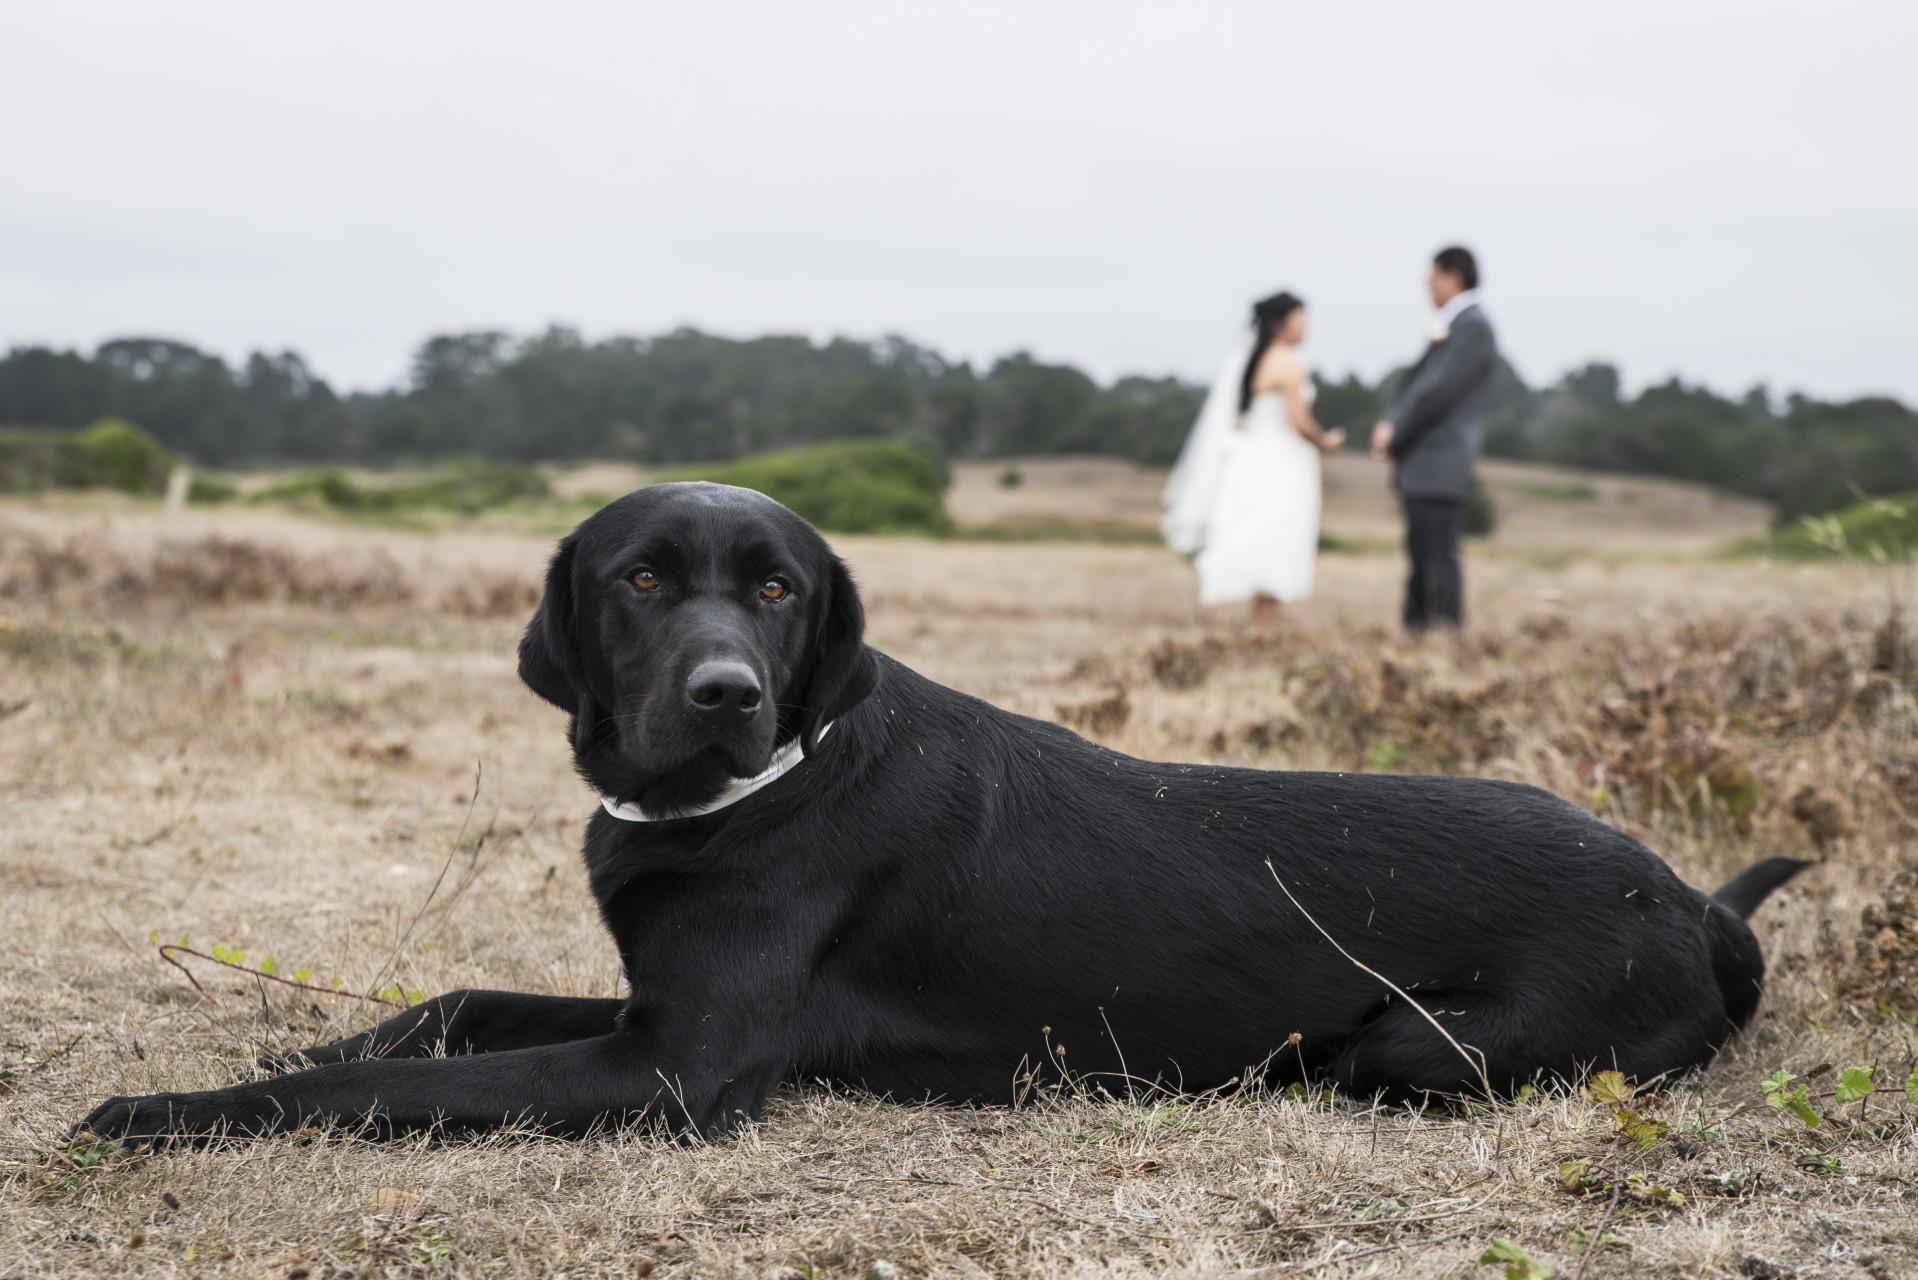 dogs weddings jperlman rlutge - 18